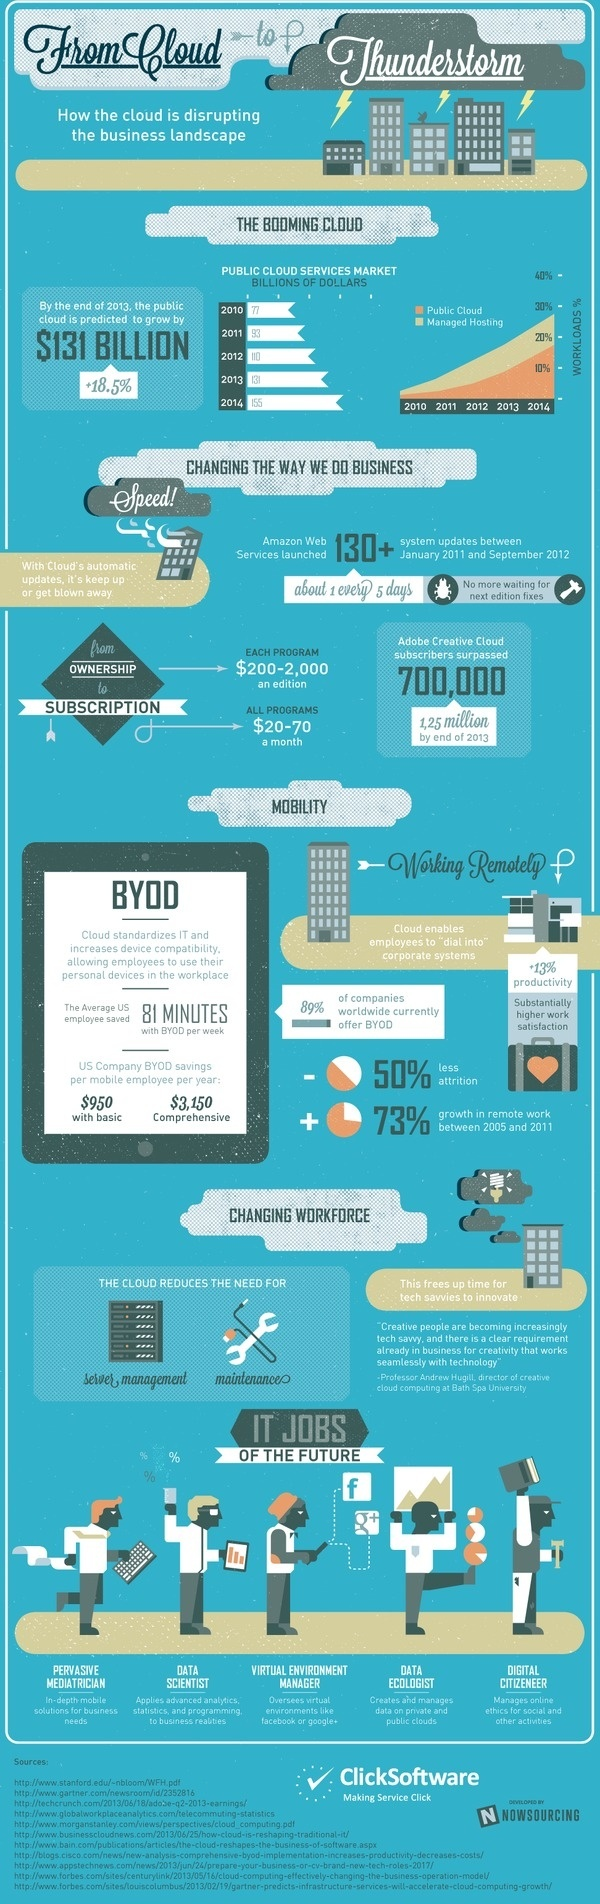 Infographic: From Cloud to Thunderstorm #cloud #computing #business